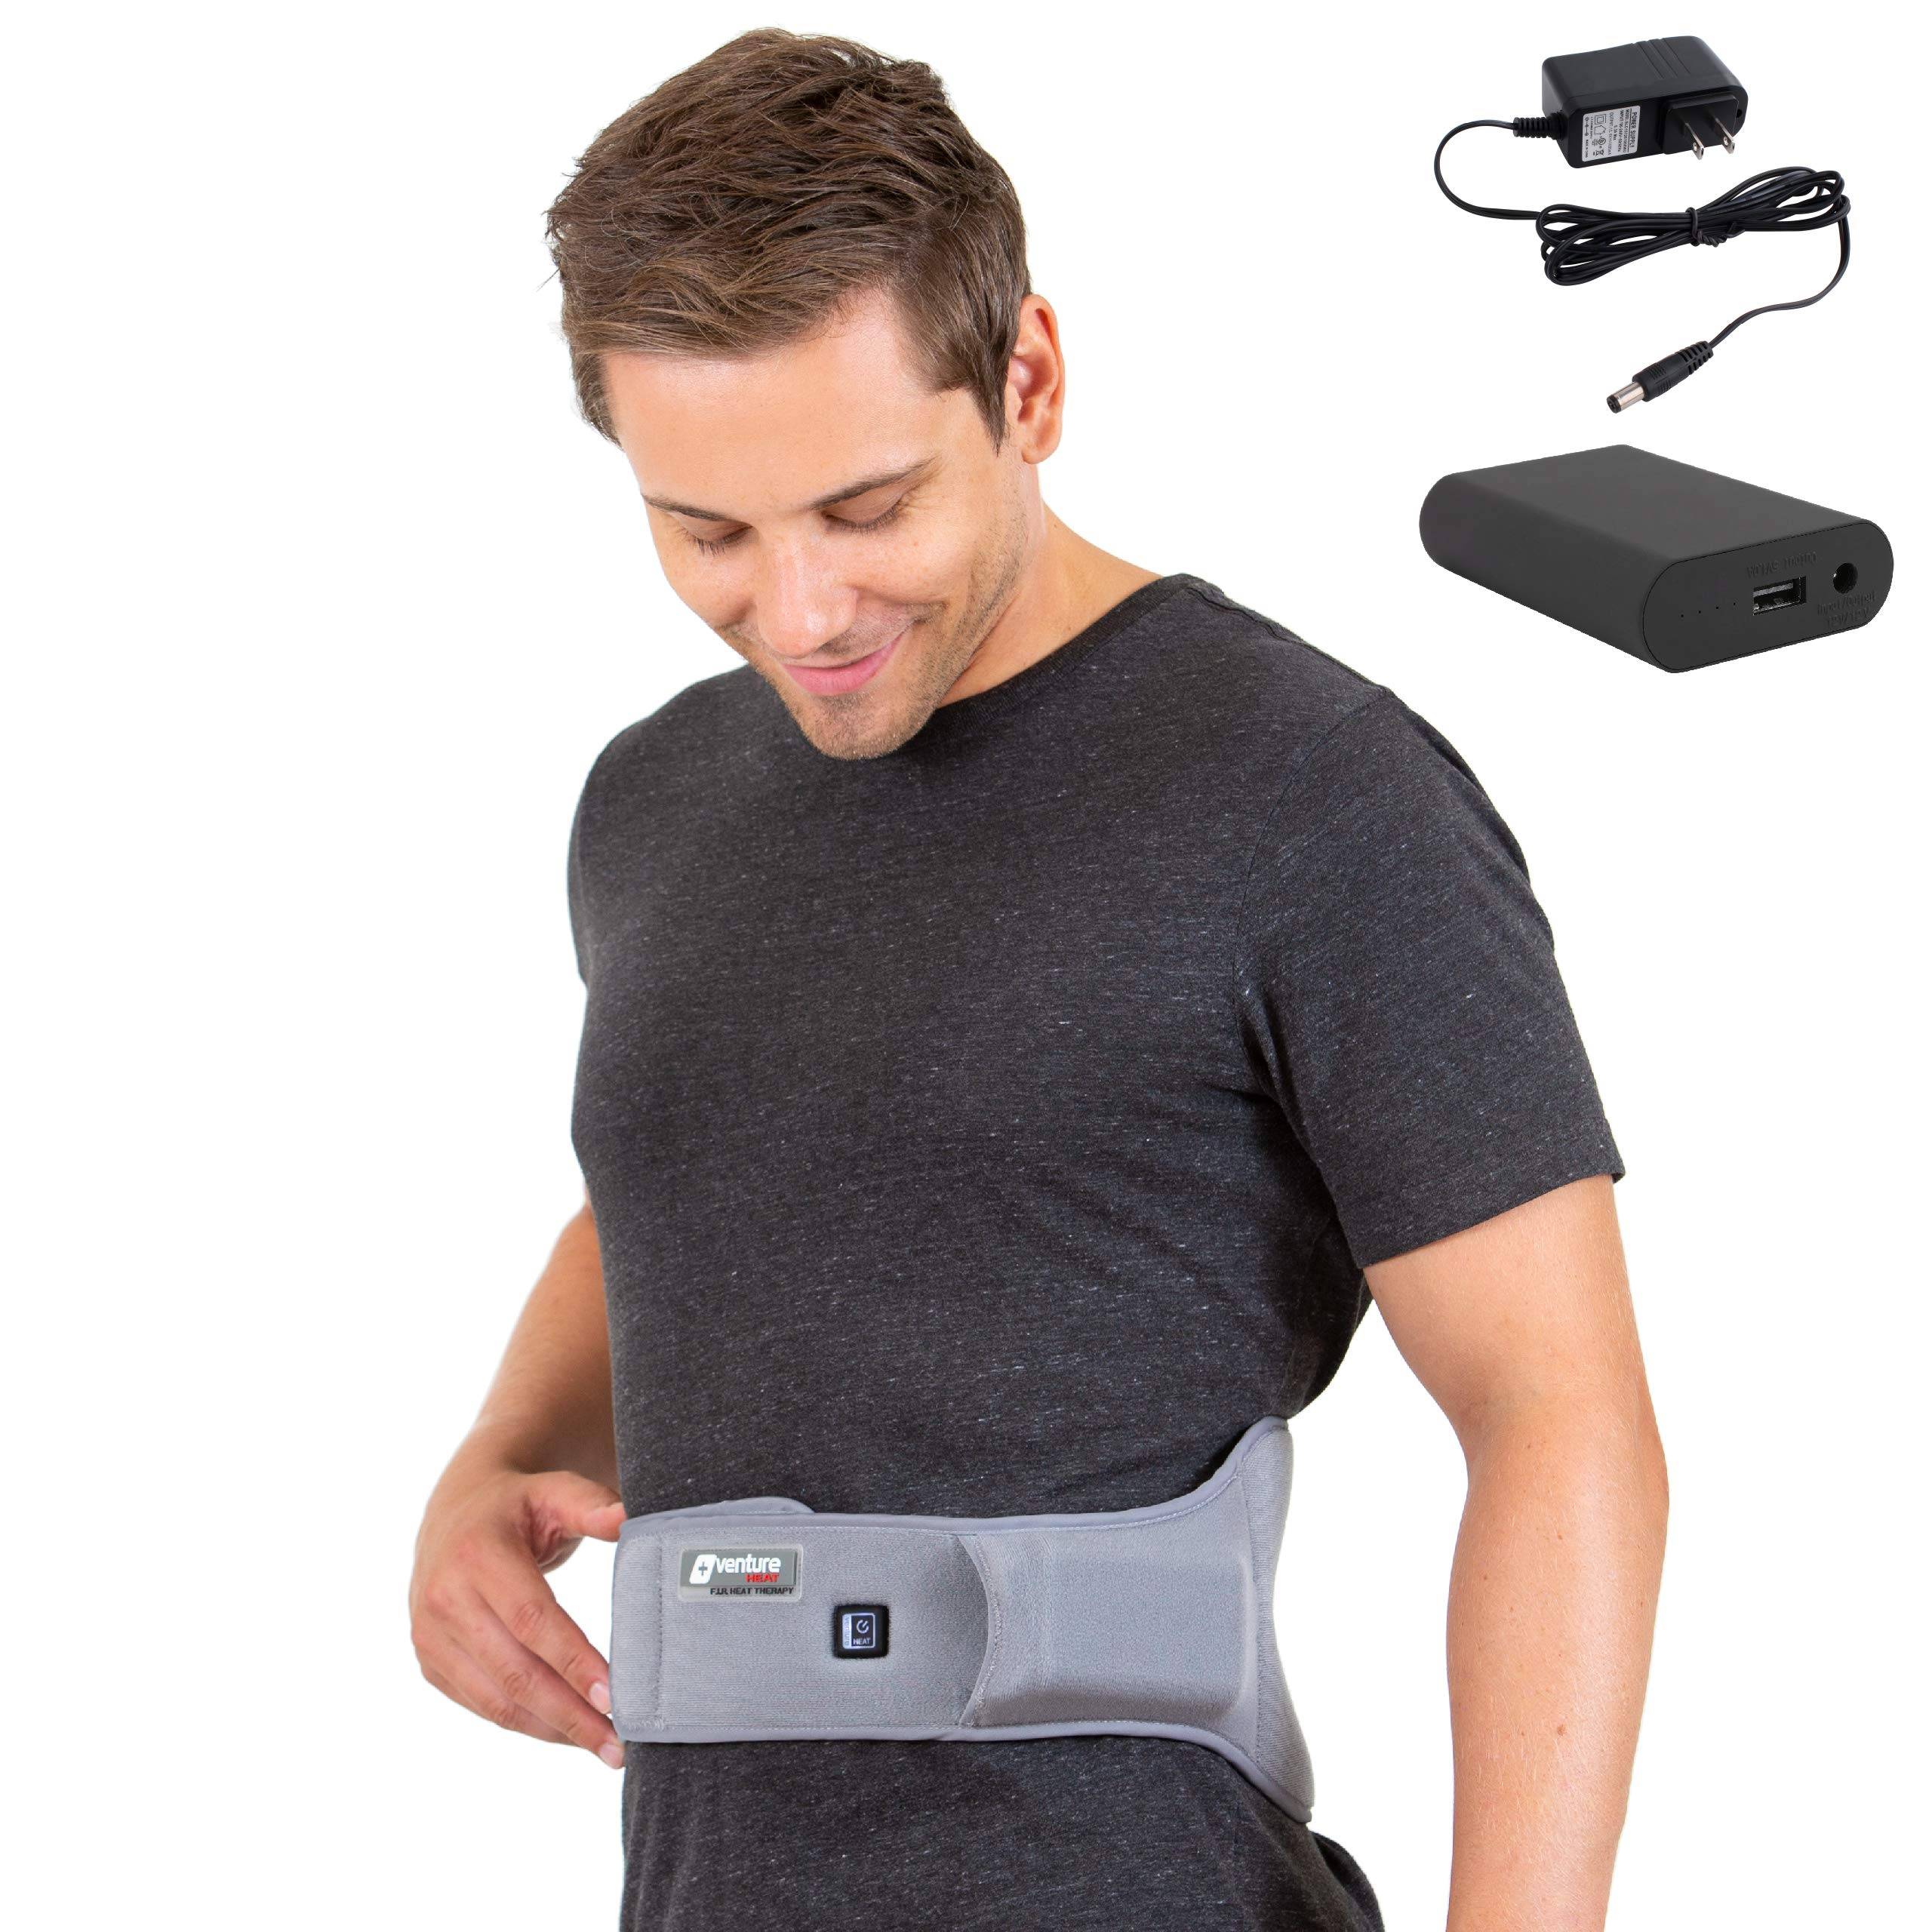 [Battery Bundle] Venture Heat Far Infrared Heated Back Wrap for Lower Back Pain - Lumbar Heat Therapy Pad Brace for Pain Relief, Stomach Cramps, Abdominal Pain